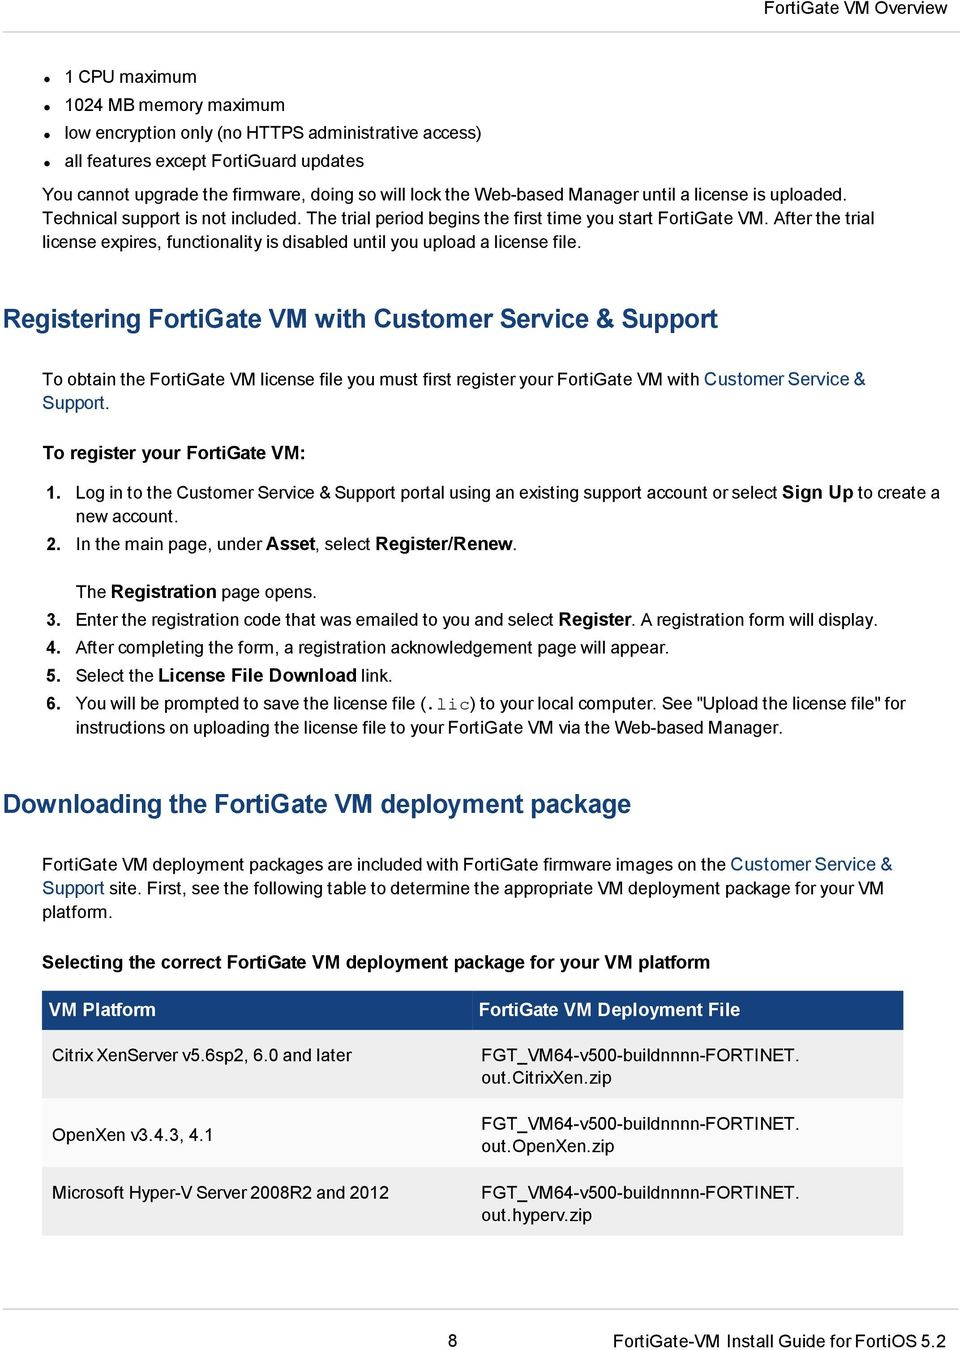 FortiOS Handbook - VM Installation VERSION PDF